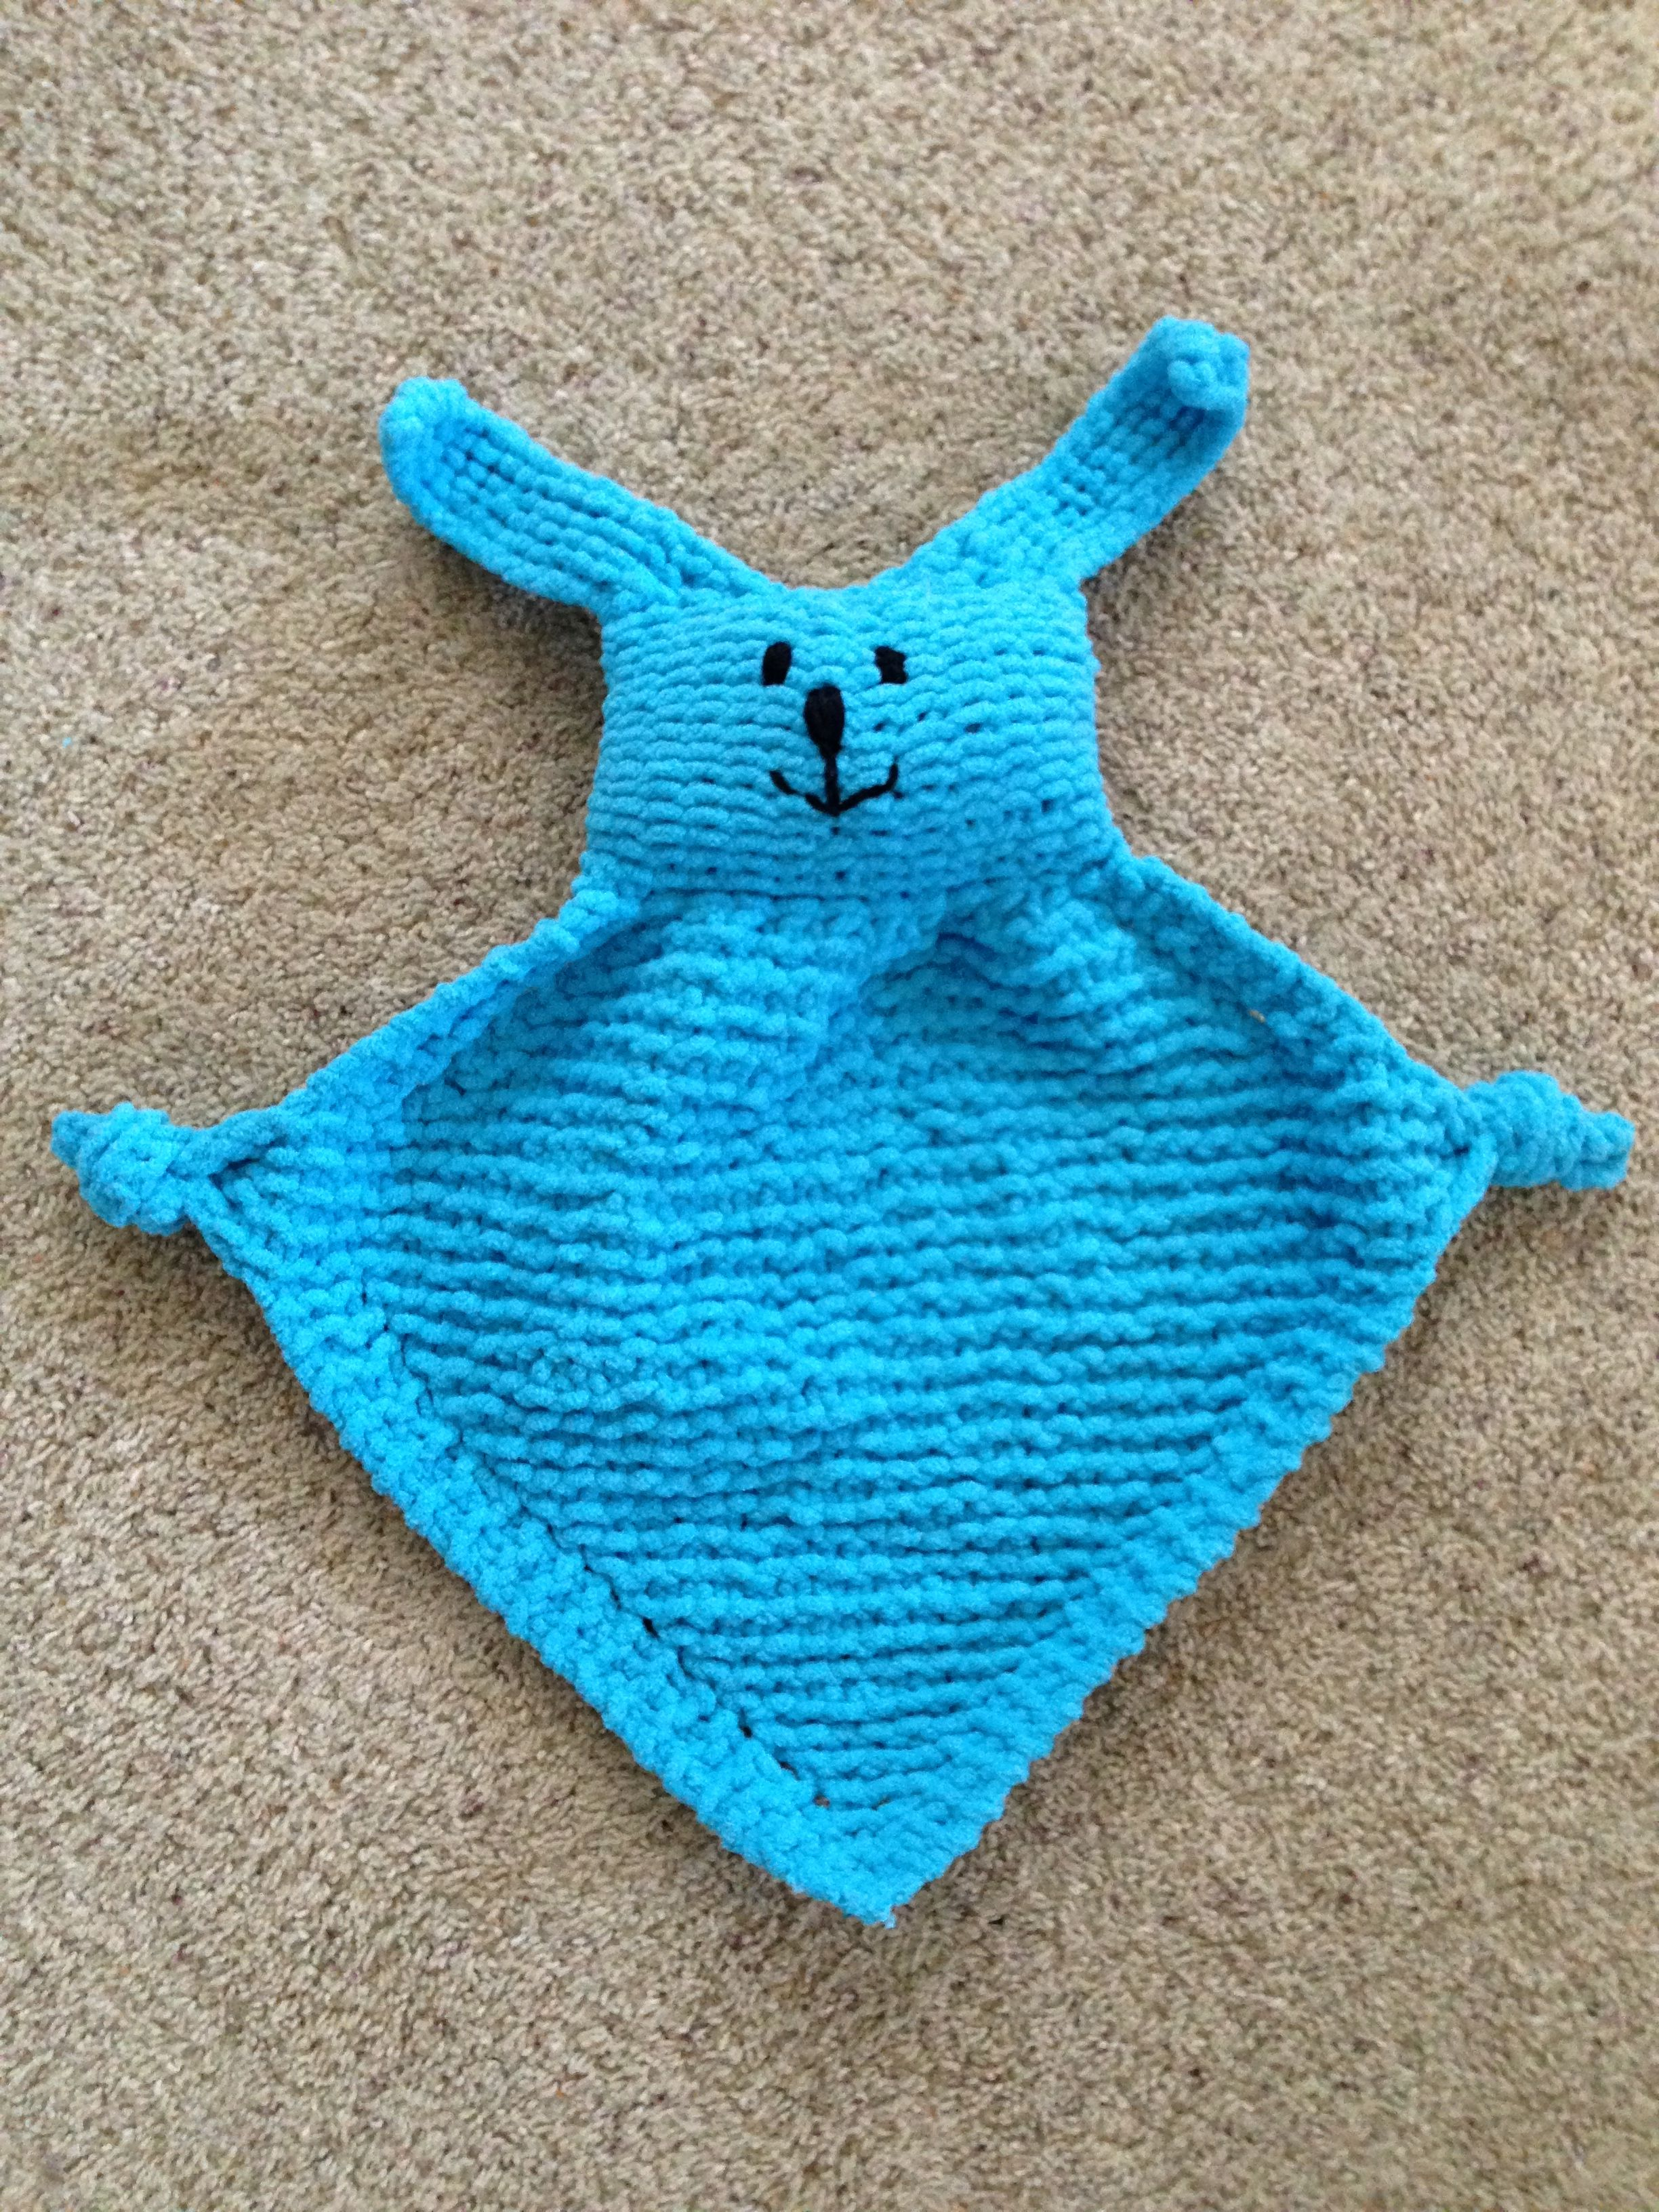 One of my favorites - Bunny Blanket Buddy pattern from Lionbrand ...